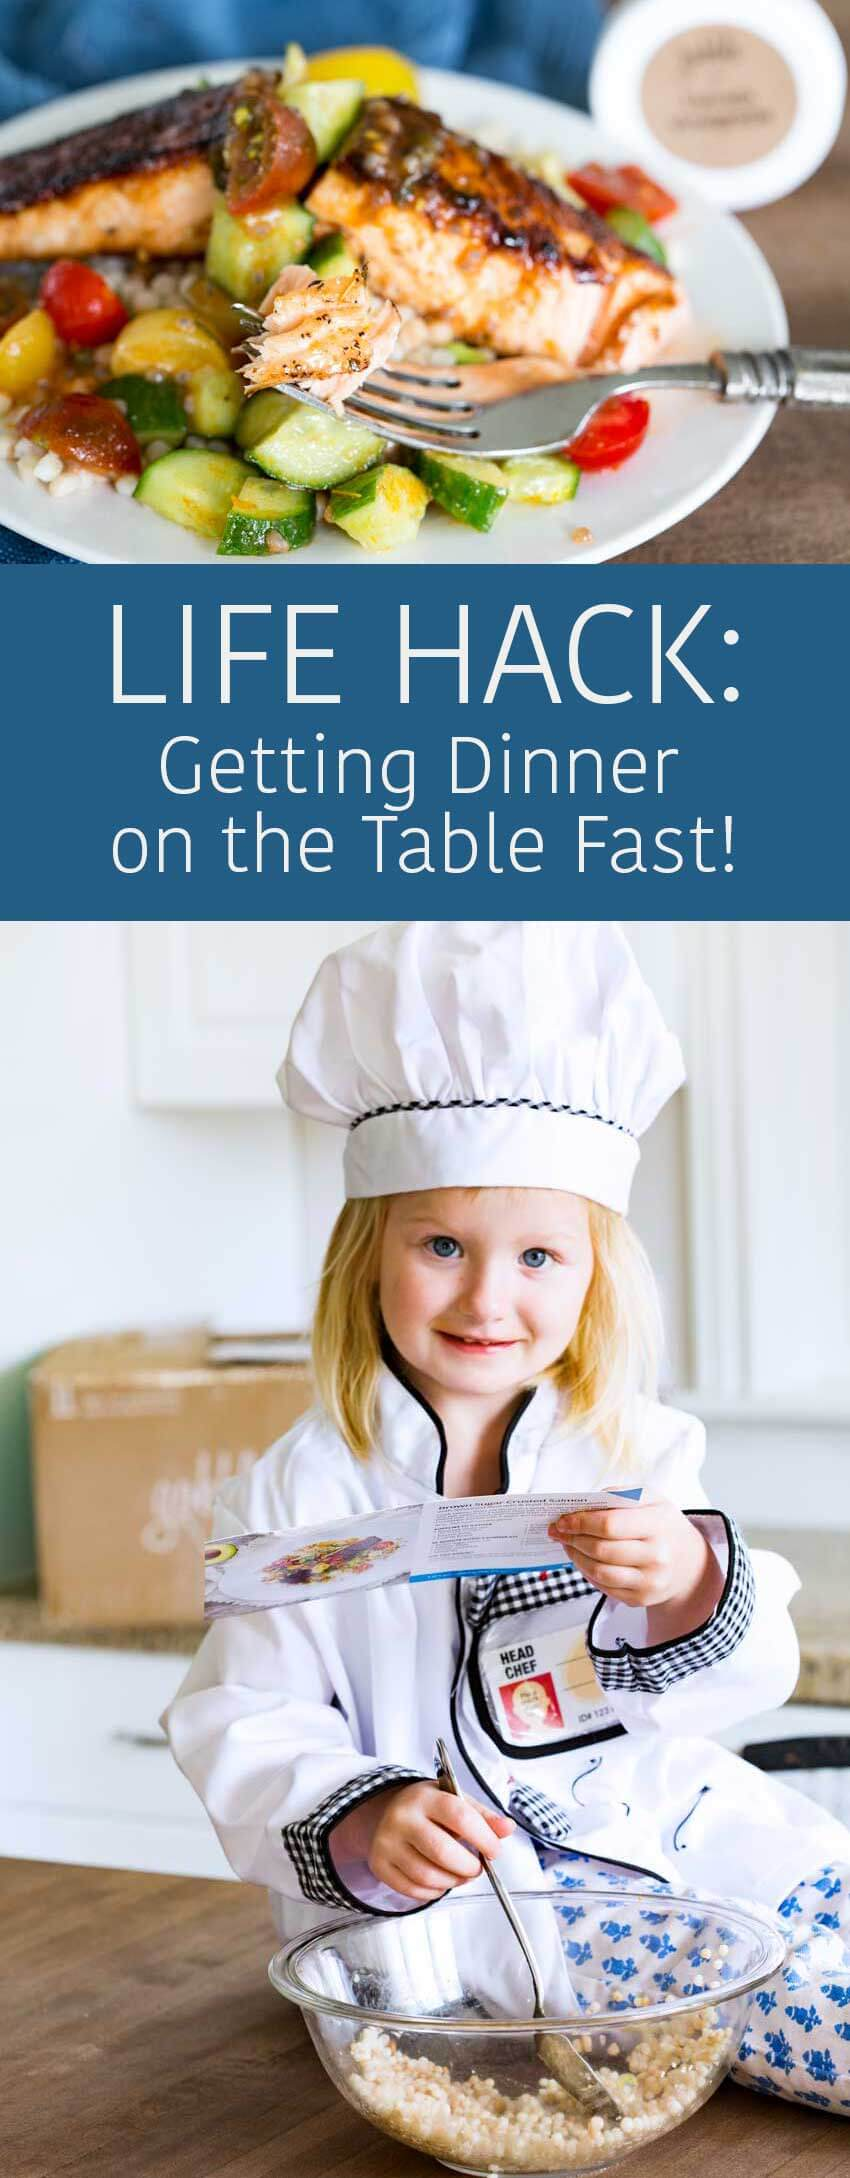 Life hacks, how to get dinner on the table fast